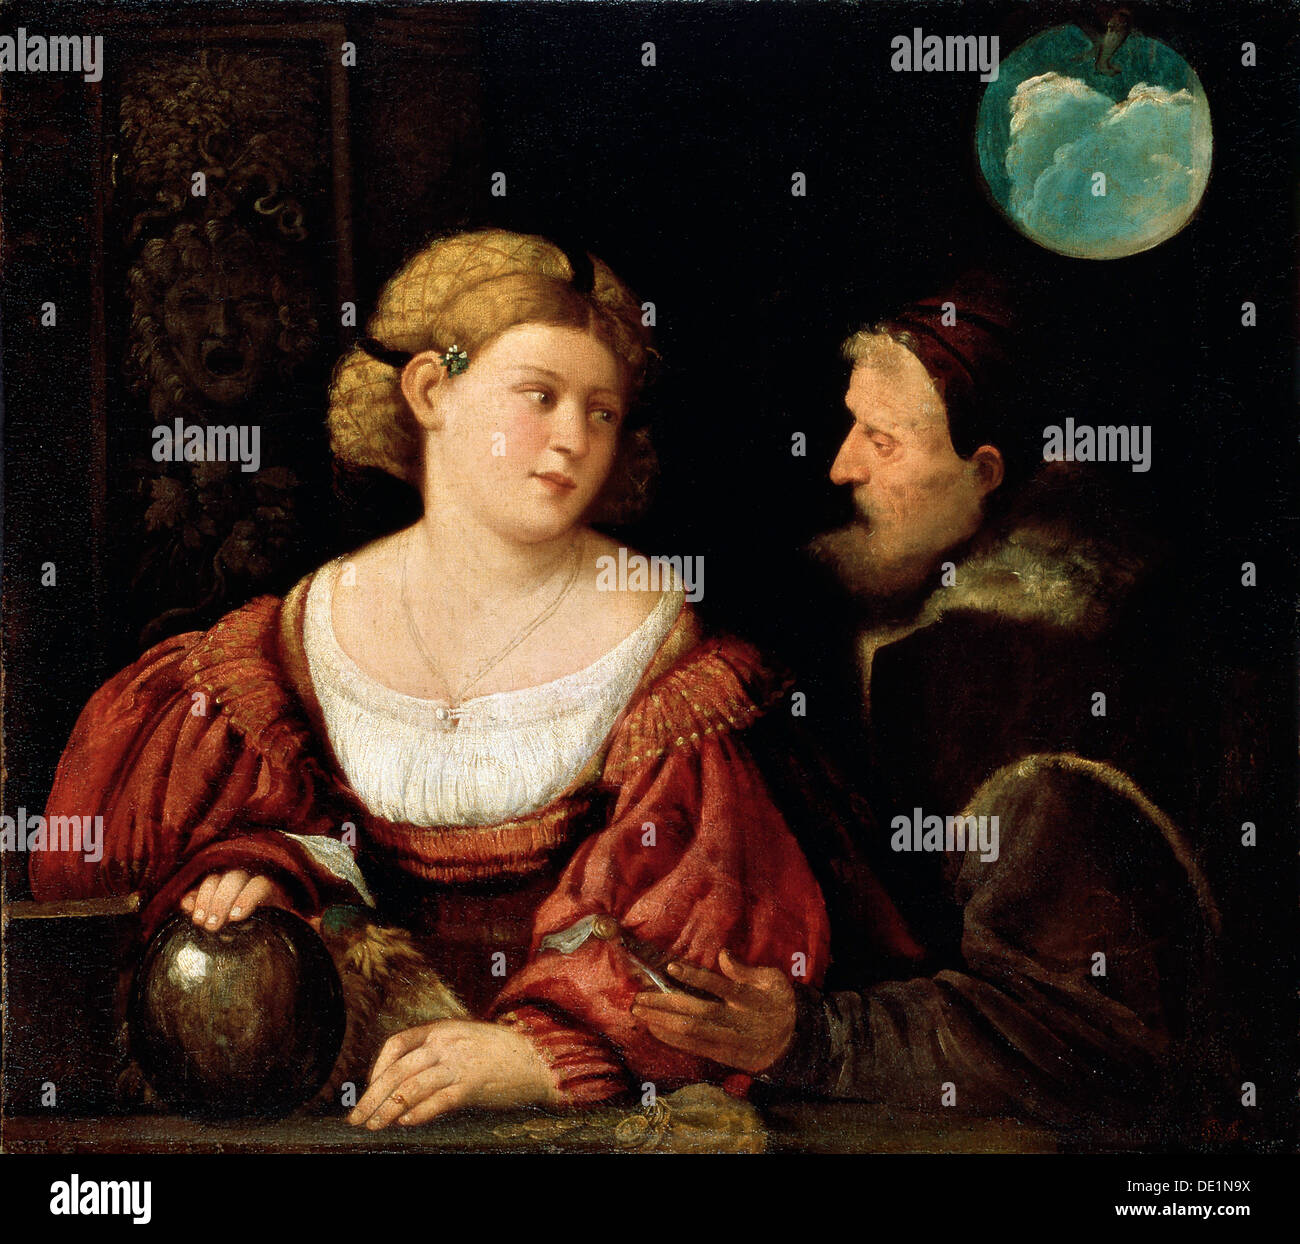 'Seduction (Old Man and a Young Woman)', 1515-1516.  Artist: Giovanni Cariani - Stock Image